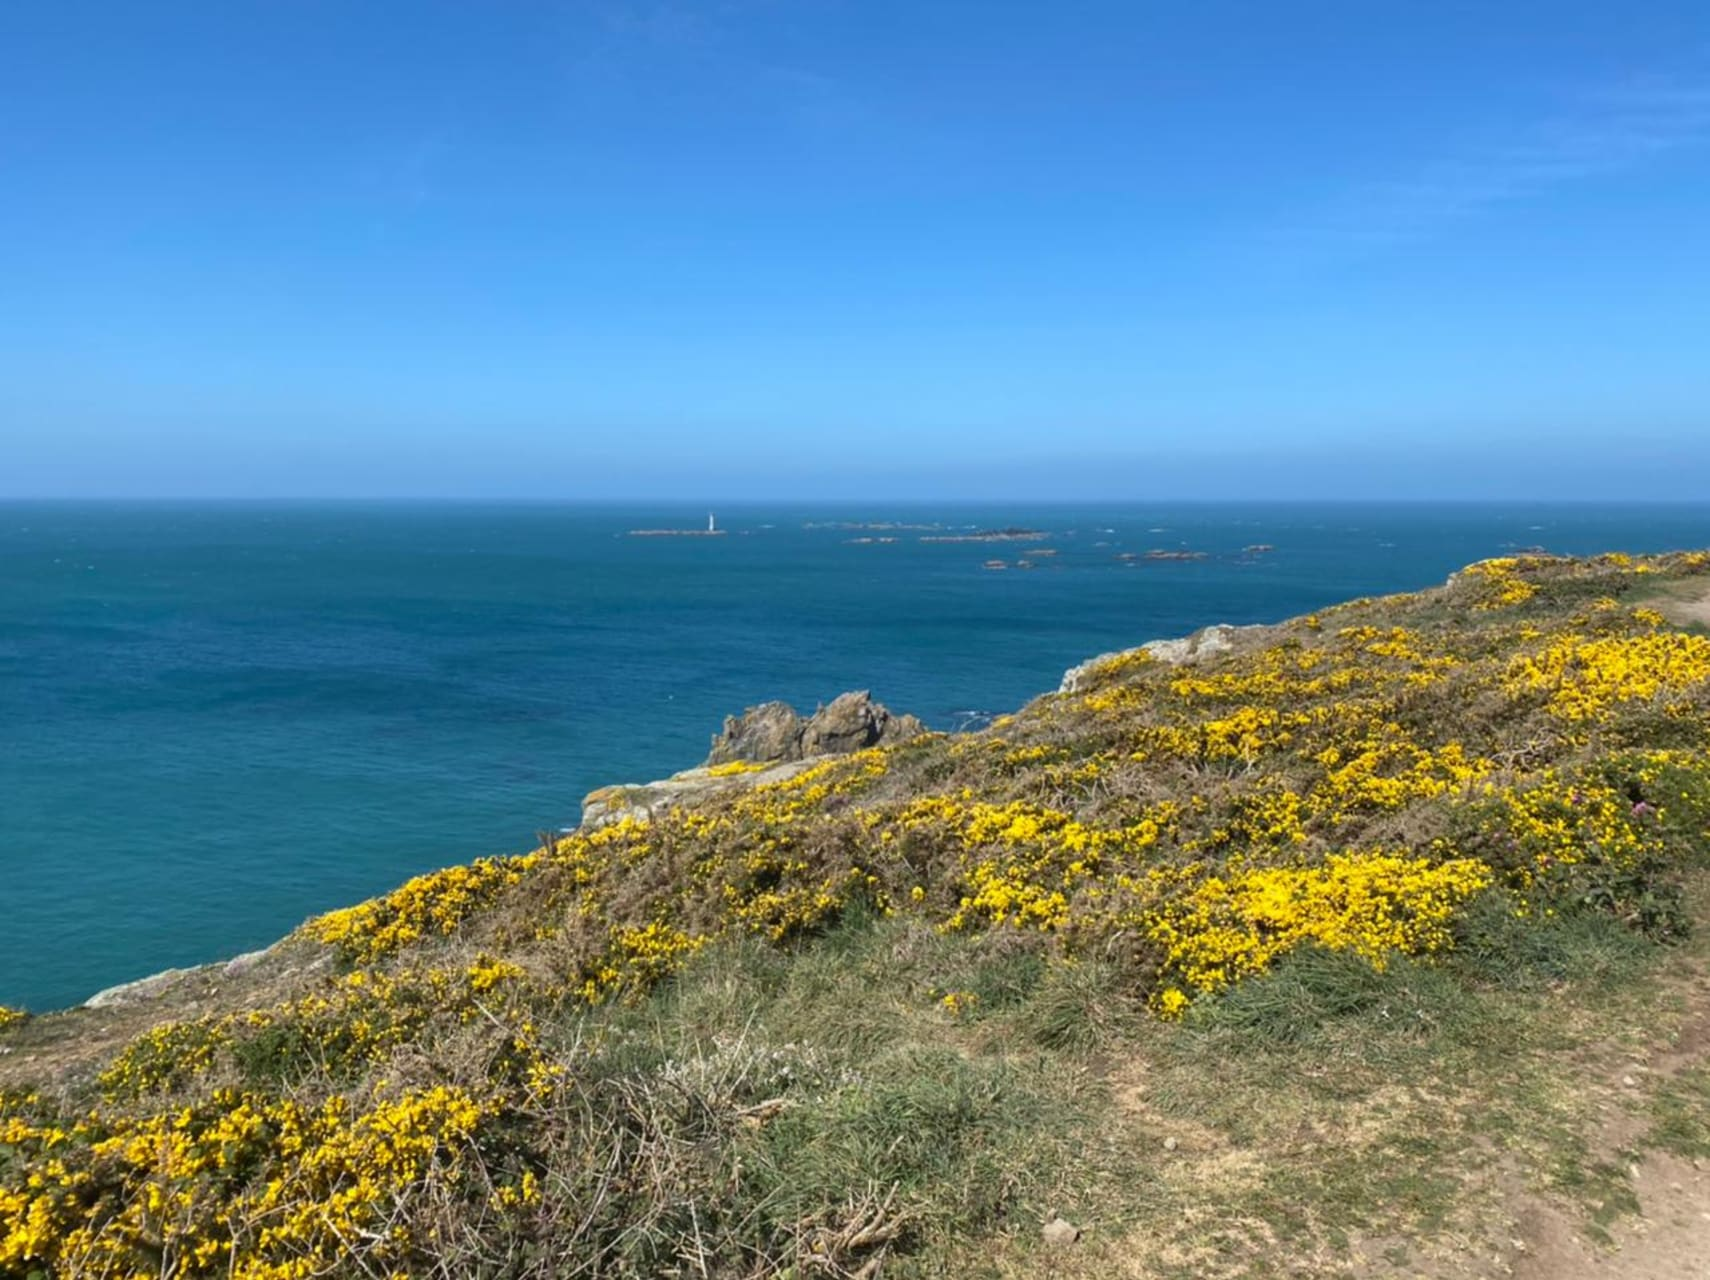 Guernsey - Hiking the South Coast Cliffs in Guernsey